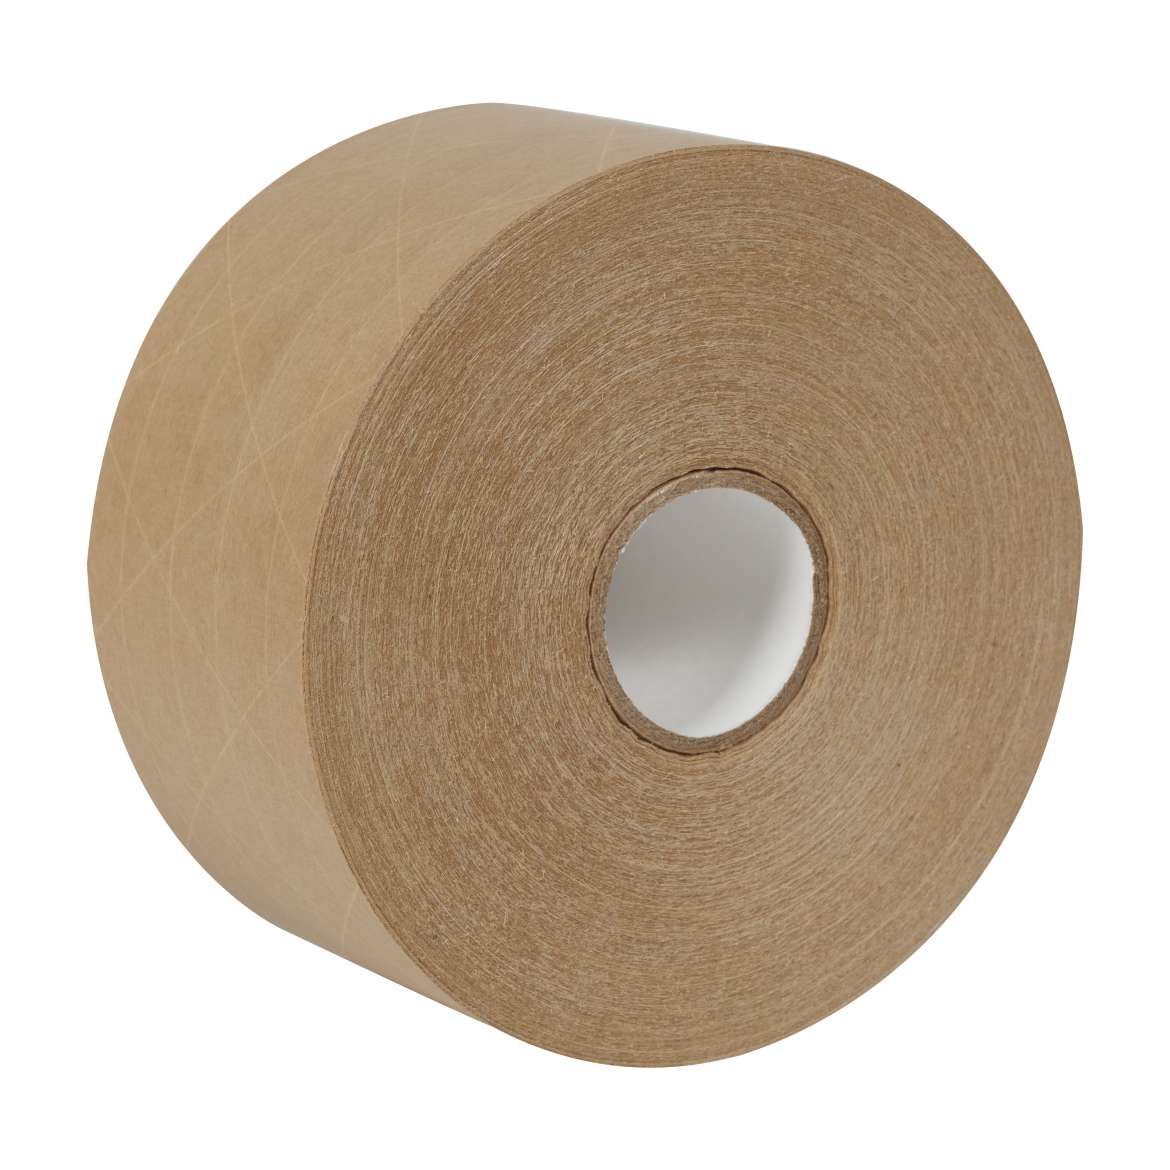 Re-inforced gummed paper tape